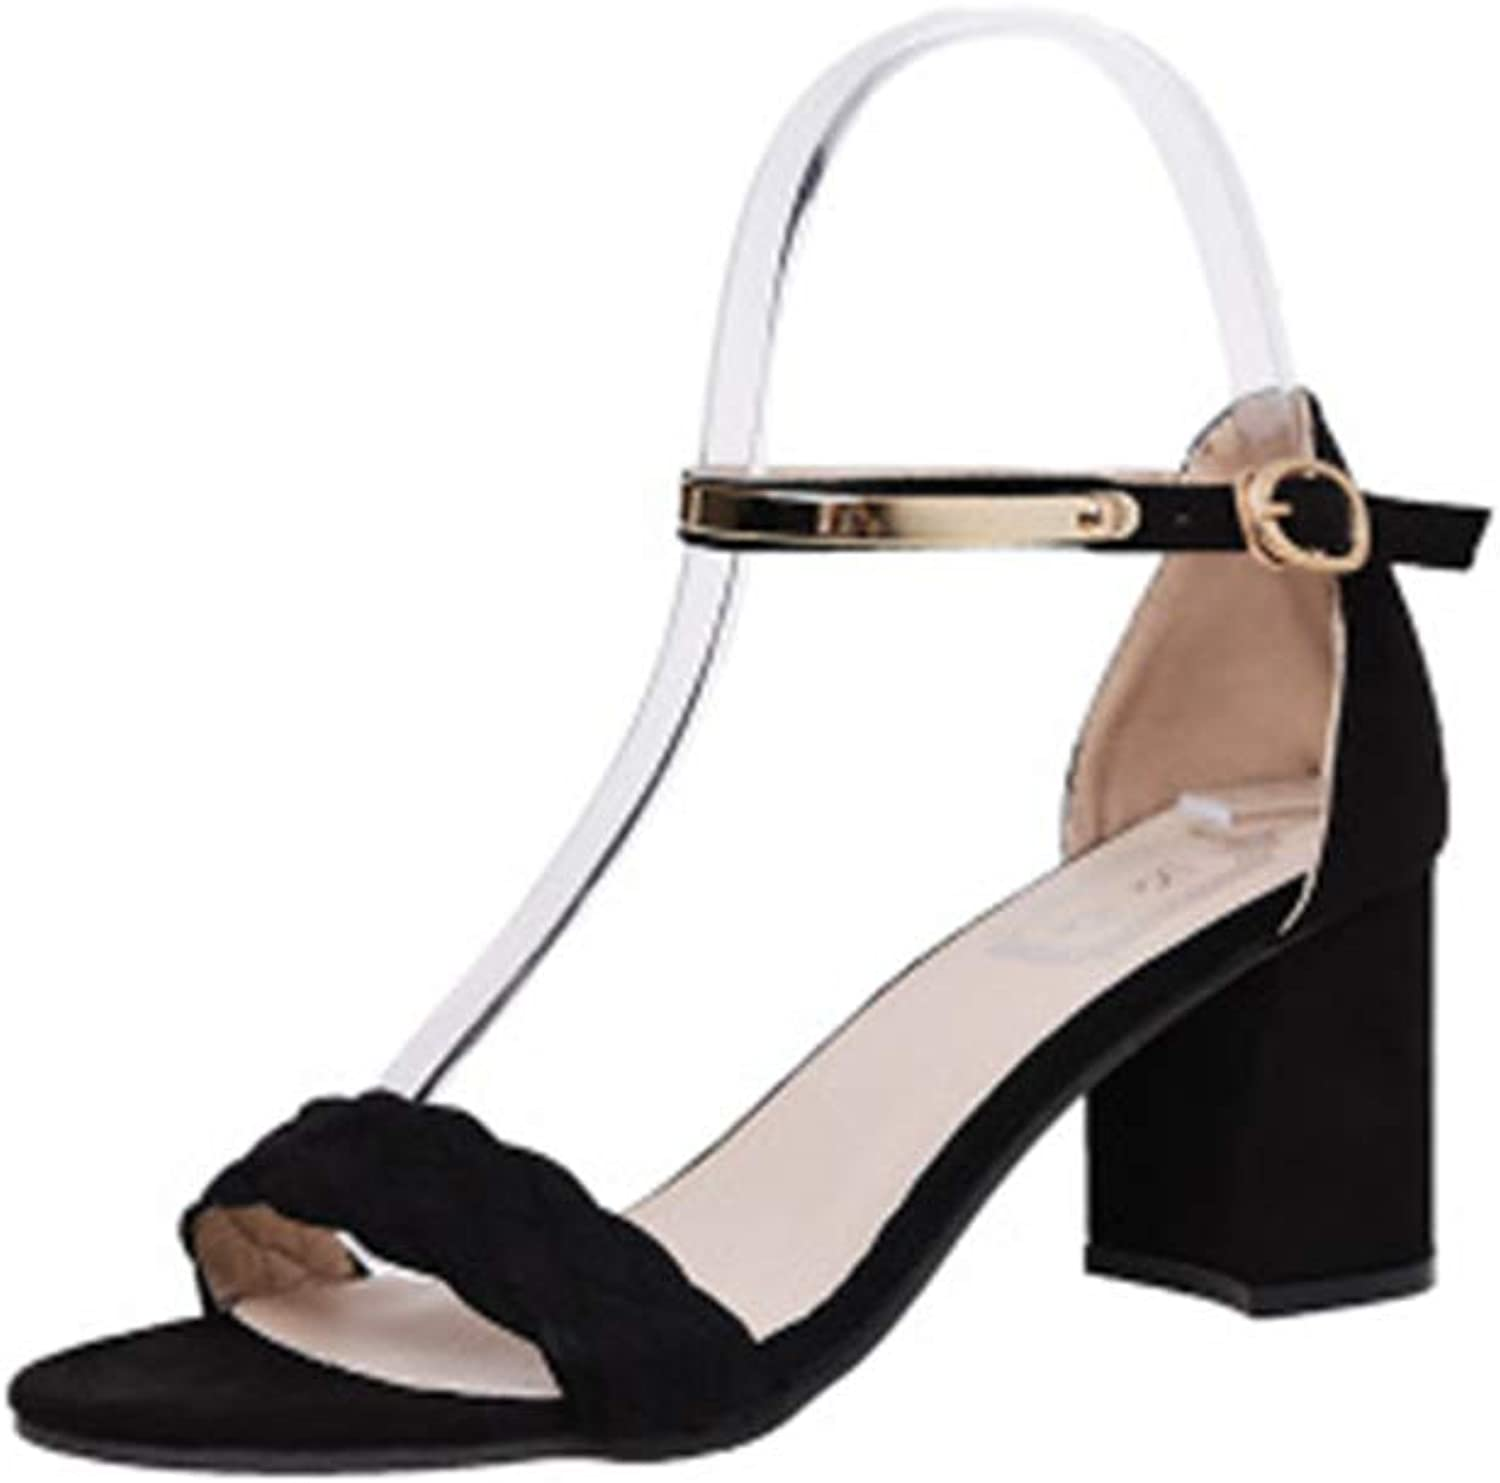 Super explosion Women's Classic Mid Heel Chunky Block Pump Sandals with Ankle Strap Dress shoes